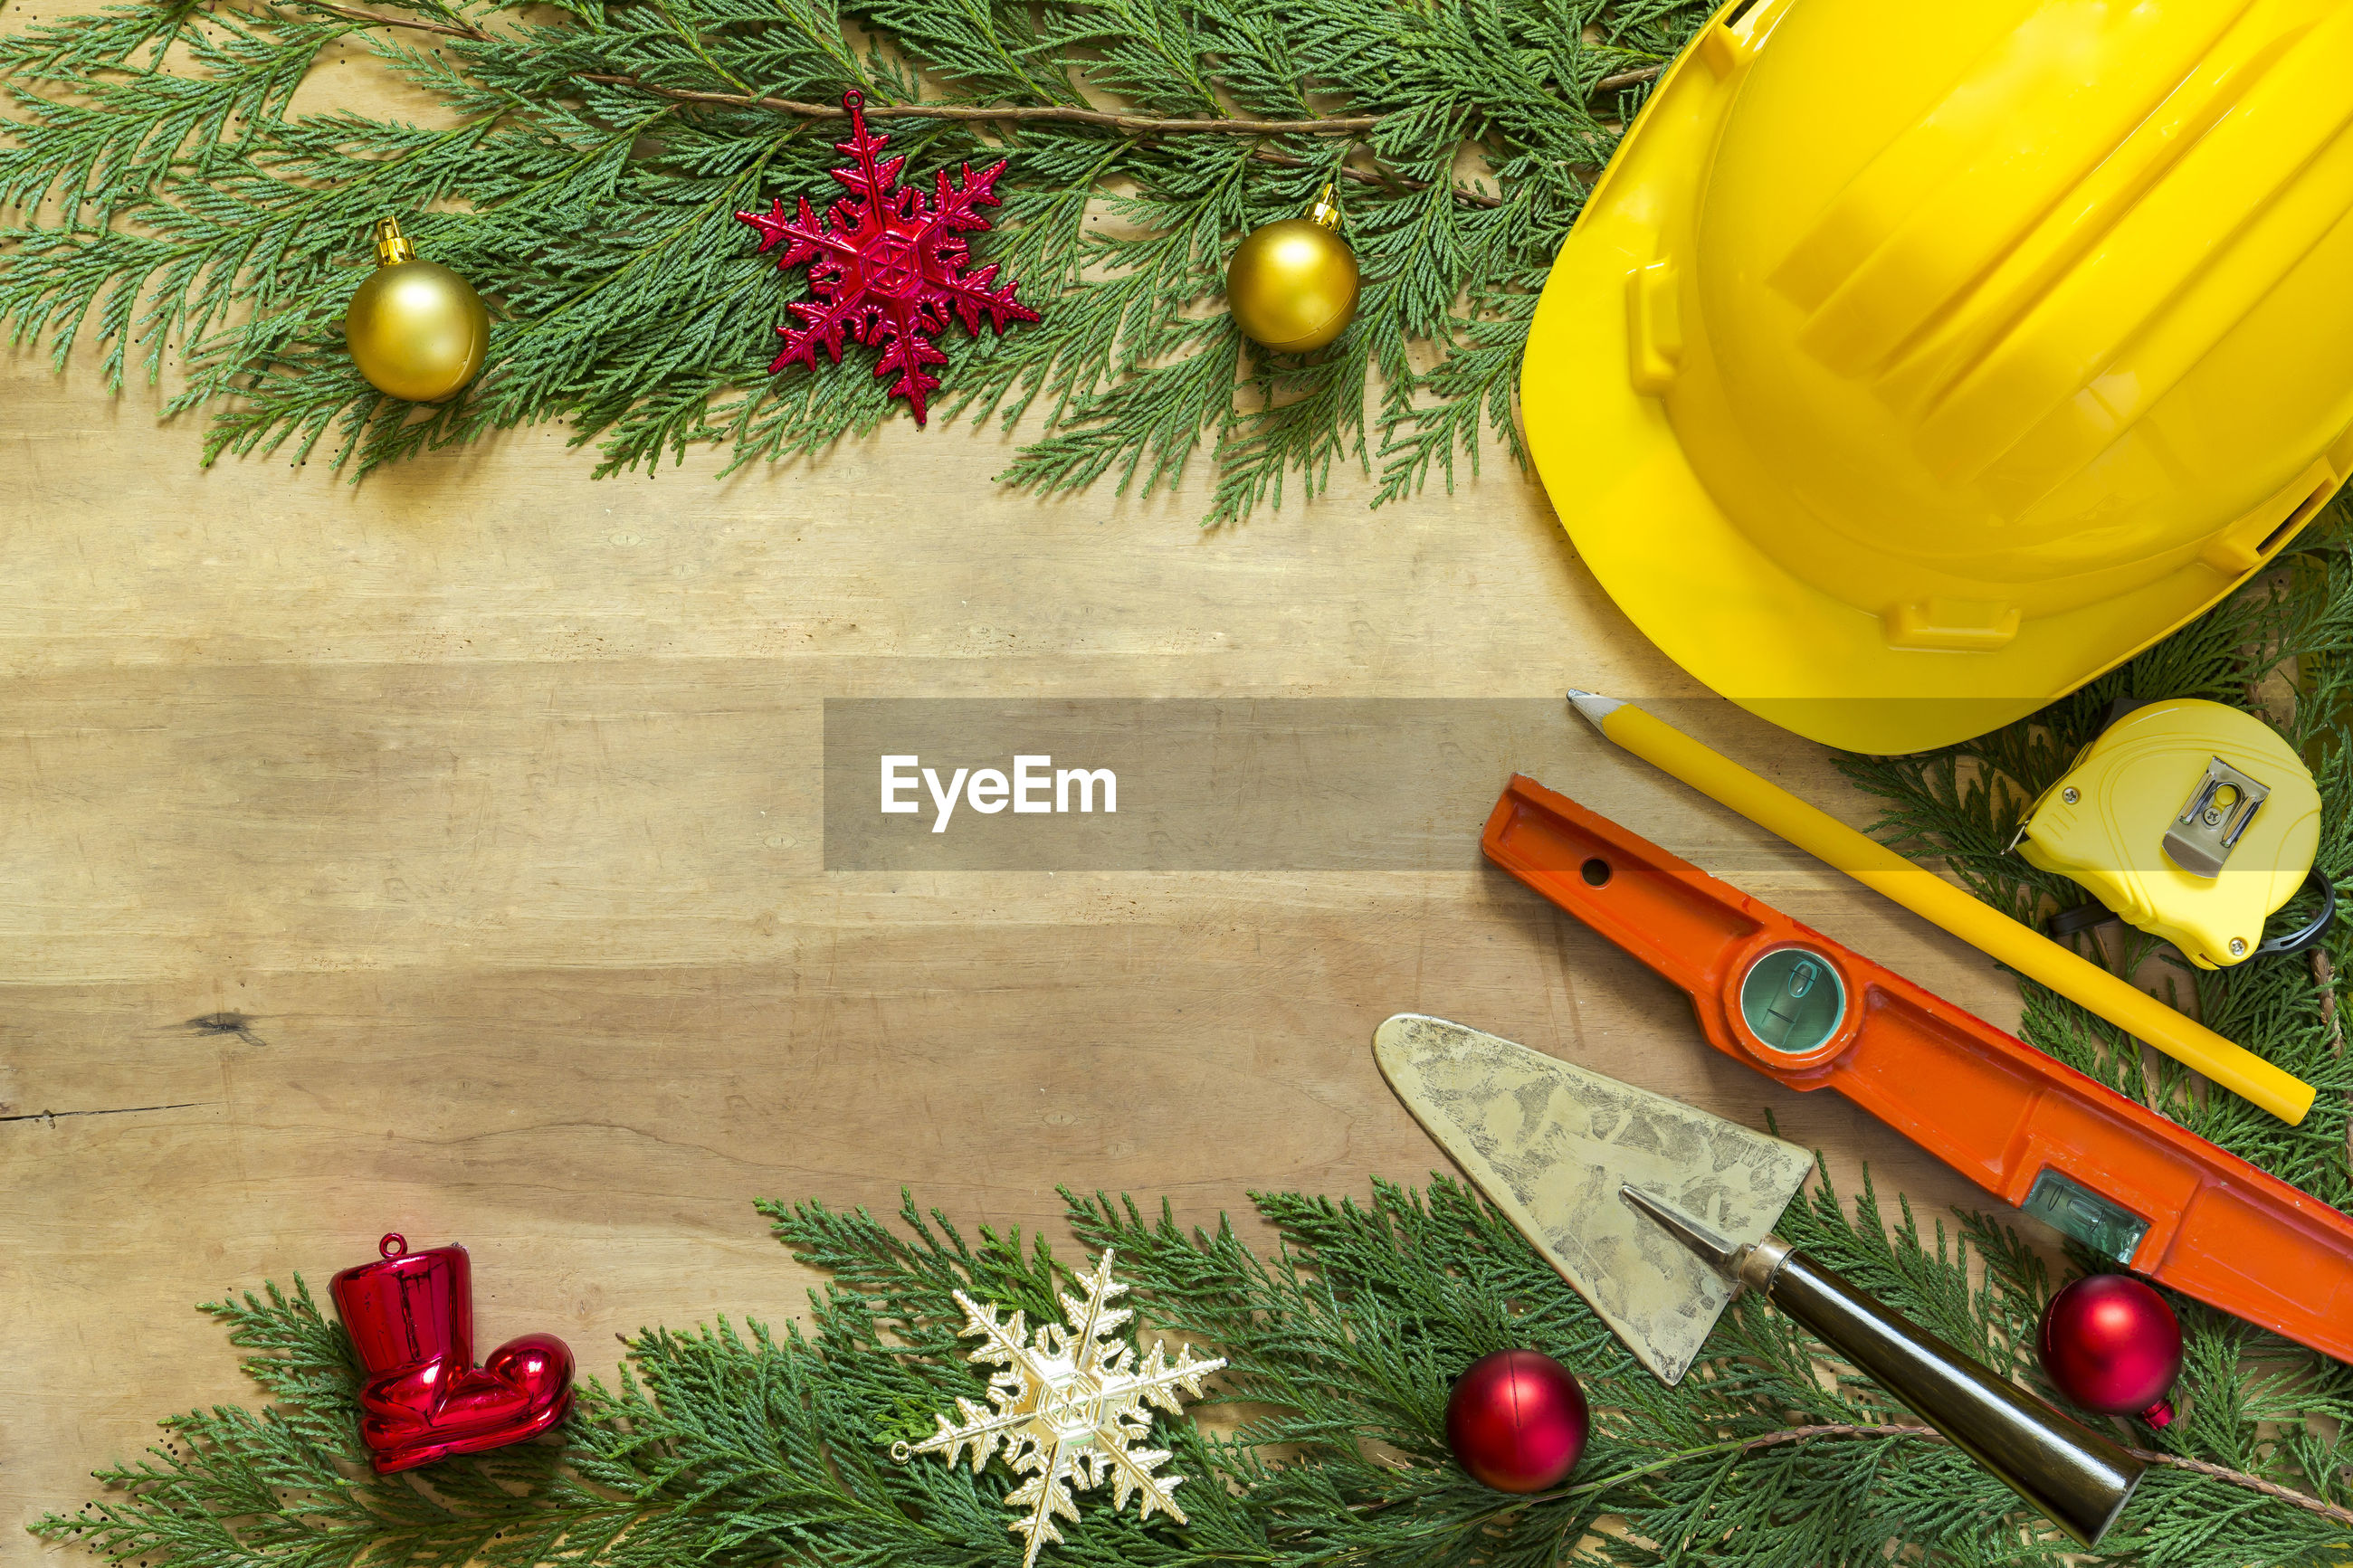 Christmas decoration and work tools on table